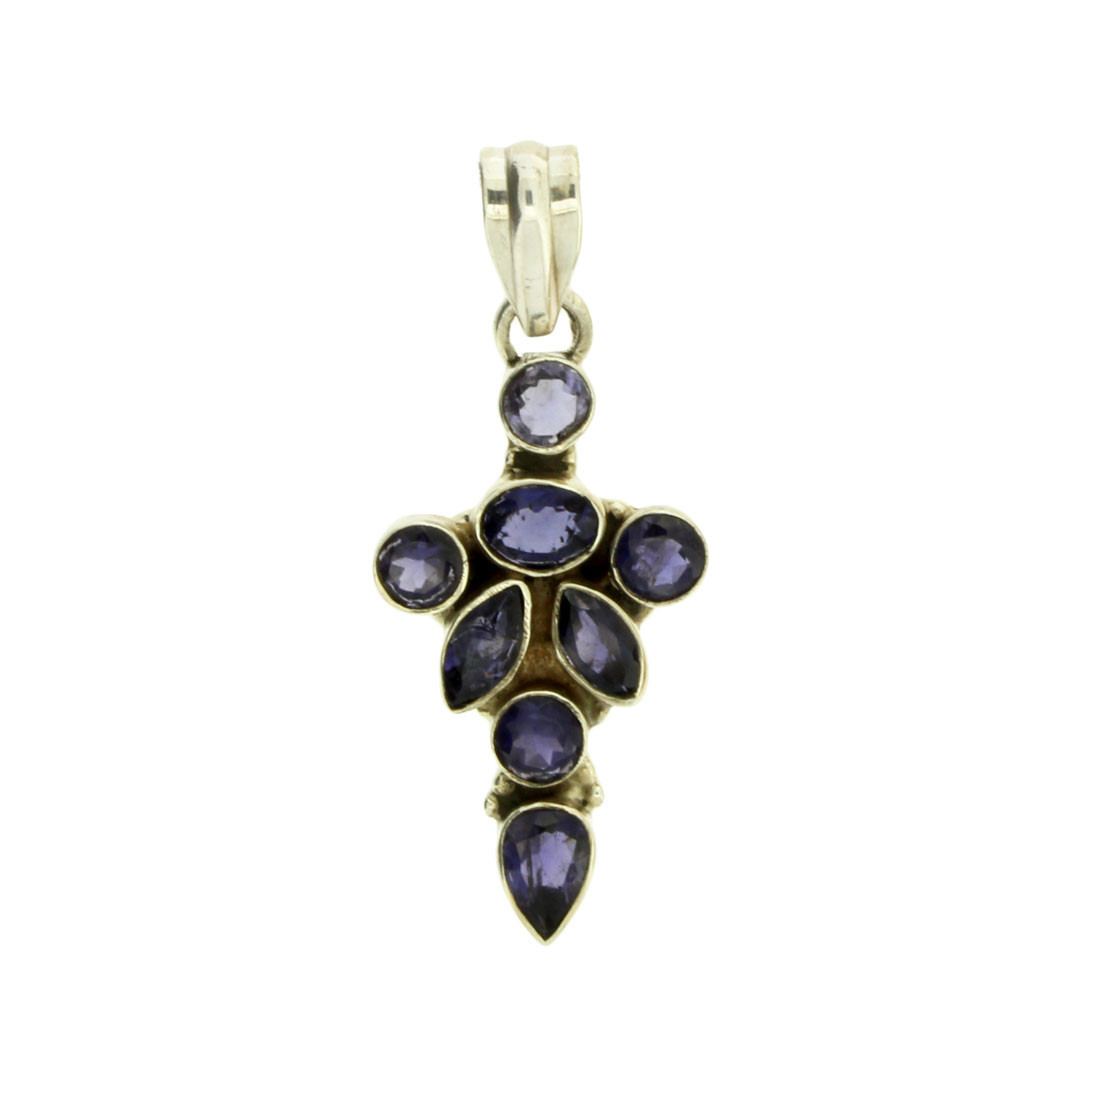 Faceted Iolite Sterling Silver Pendant